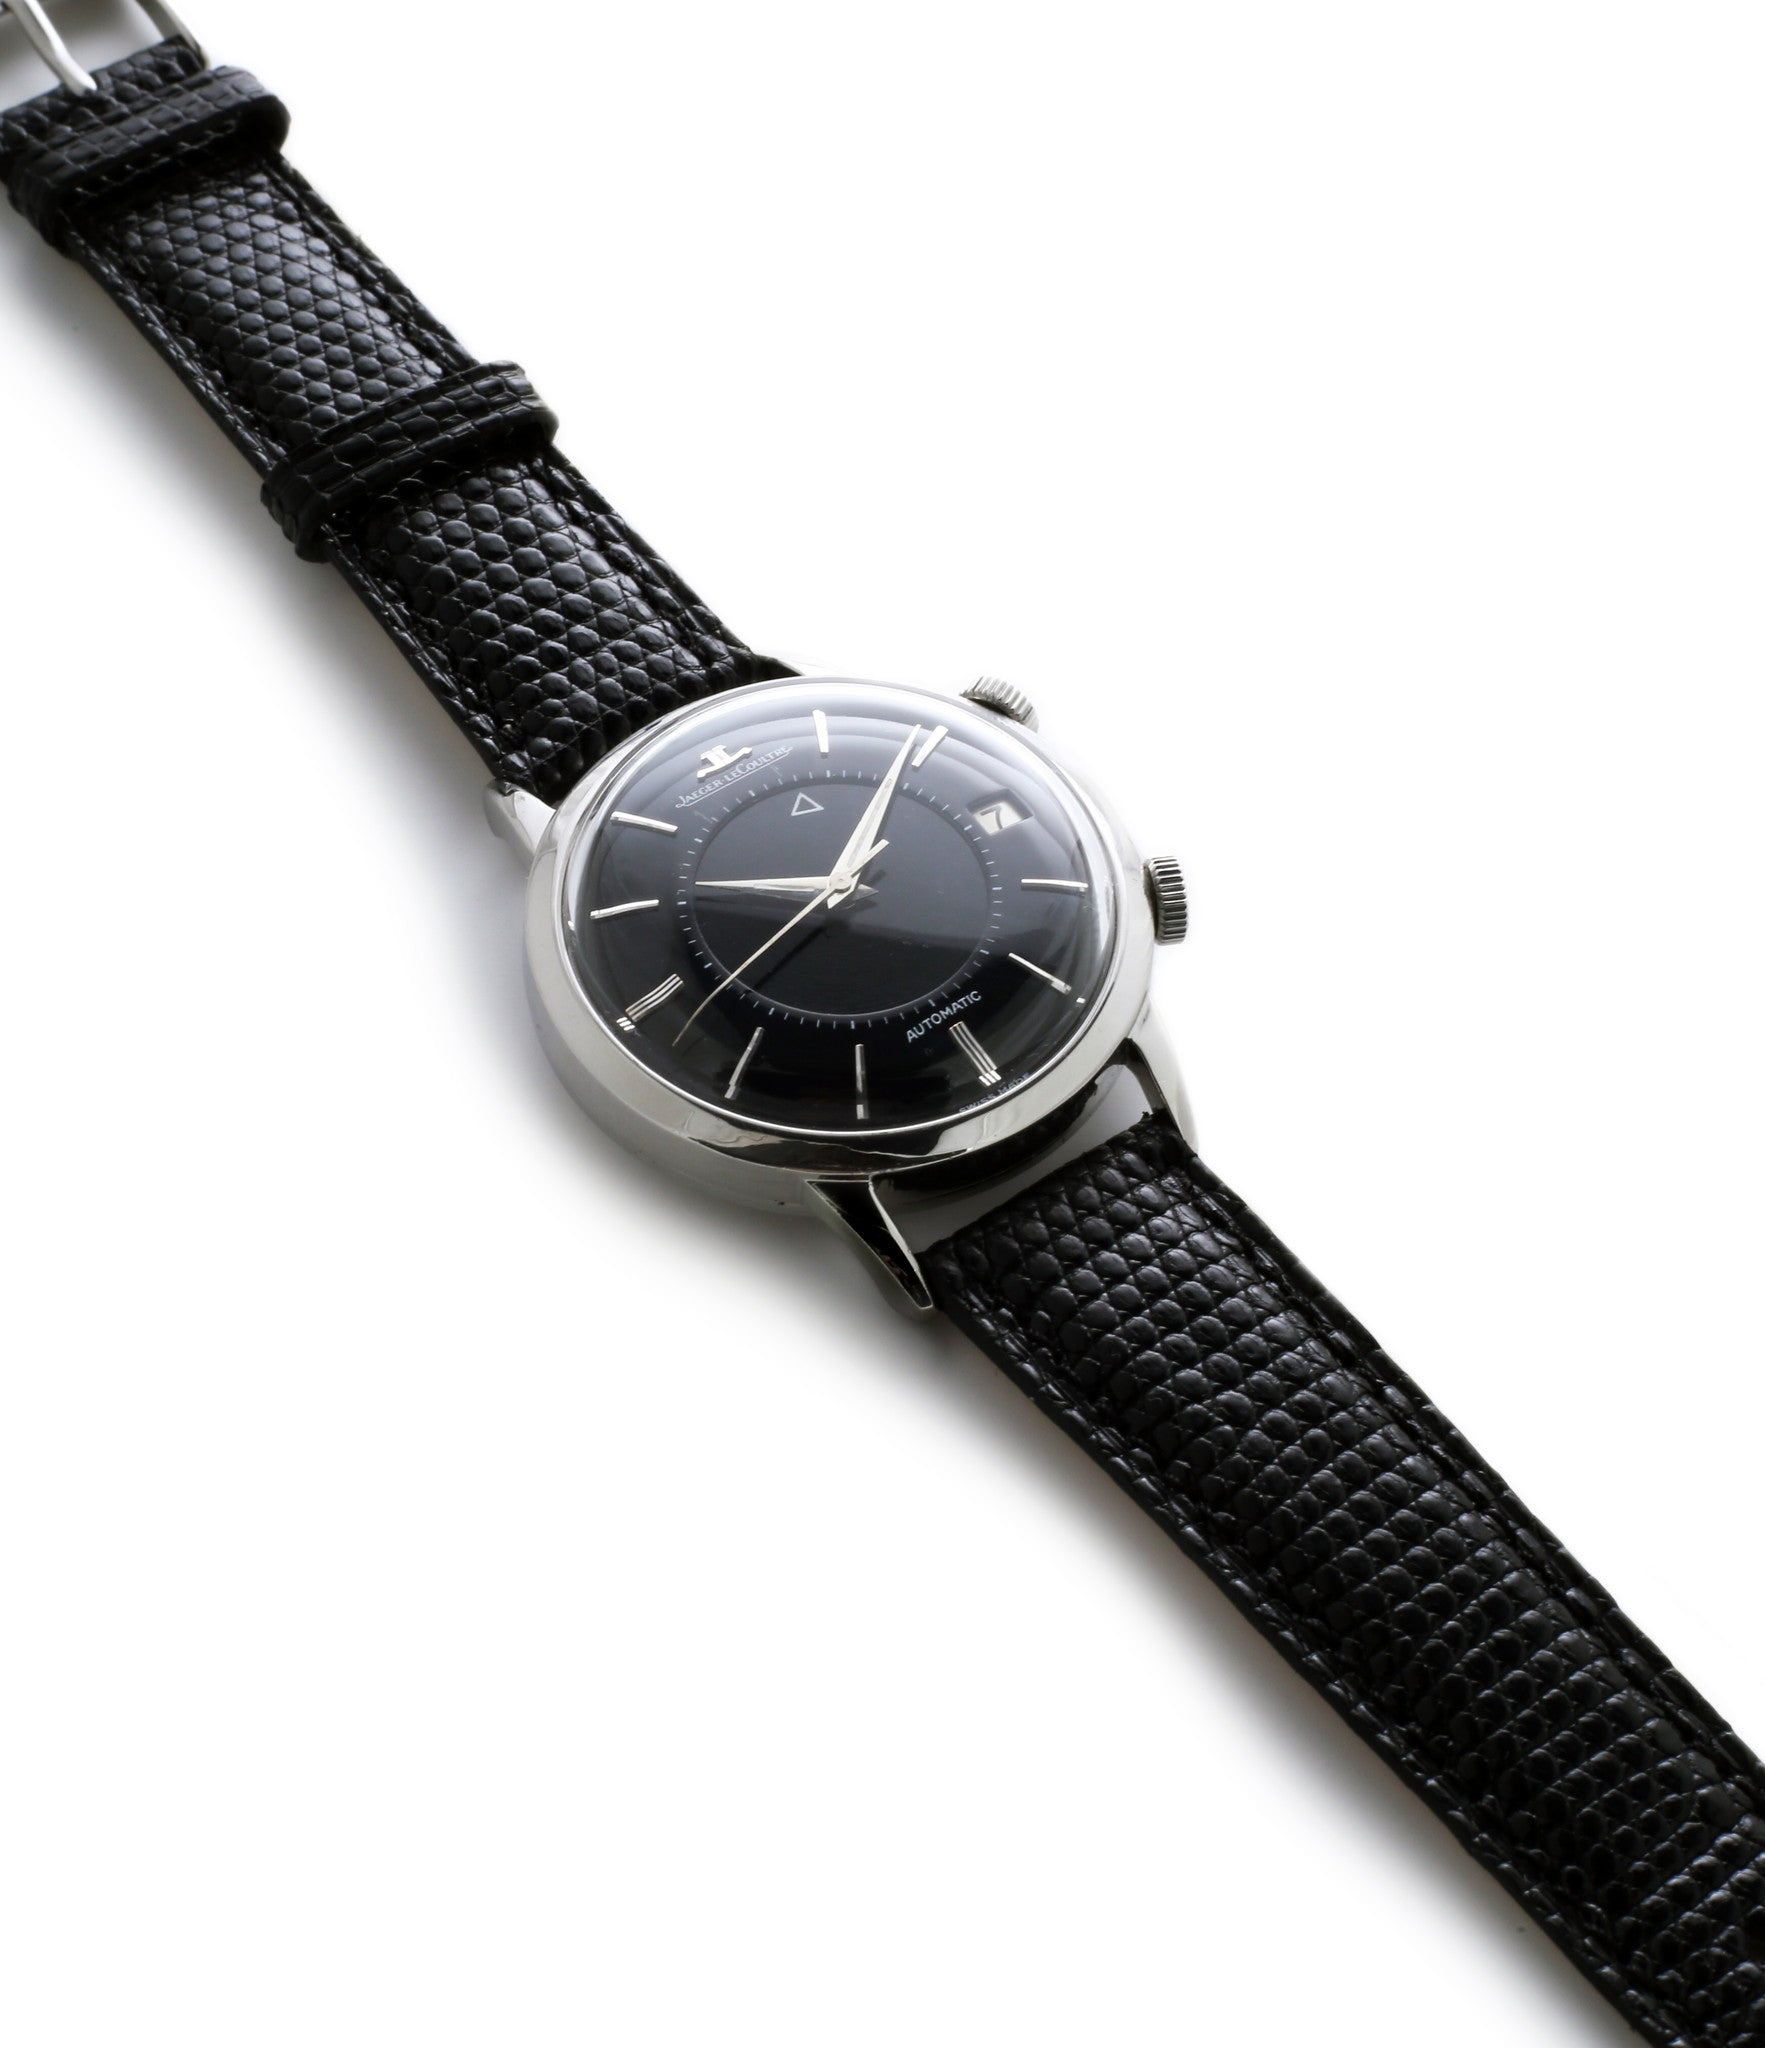 buy vintage Jaeger-LeCoultre Memovox steel time-only dress watch automatic Cal. 825 bumper movement unrestored black dial for sale from WATCH XCHANGE London fully serviced with authenticity guaranteed